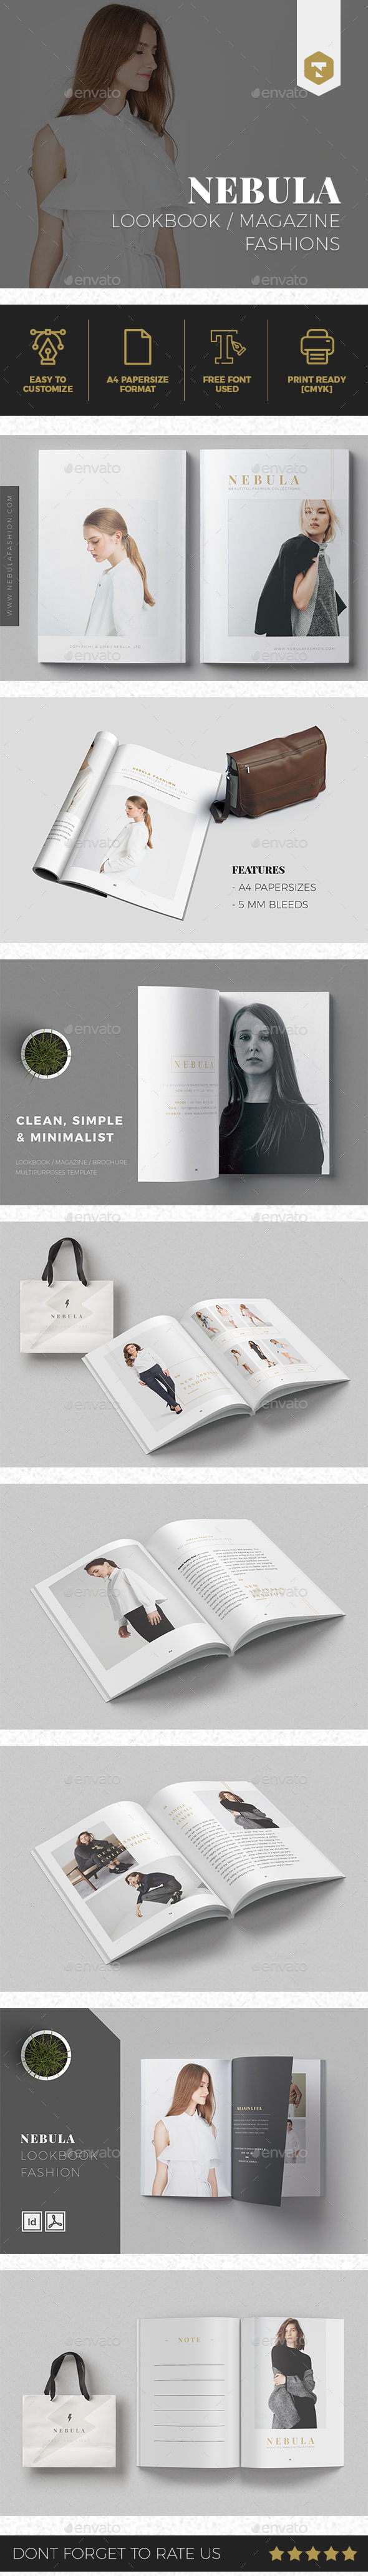 NEBULA | Lookbook/Magazine Fashion - Brochures Print Templates